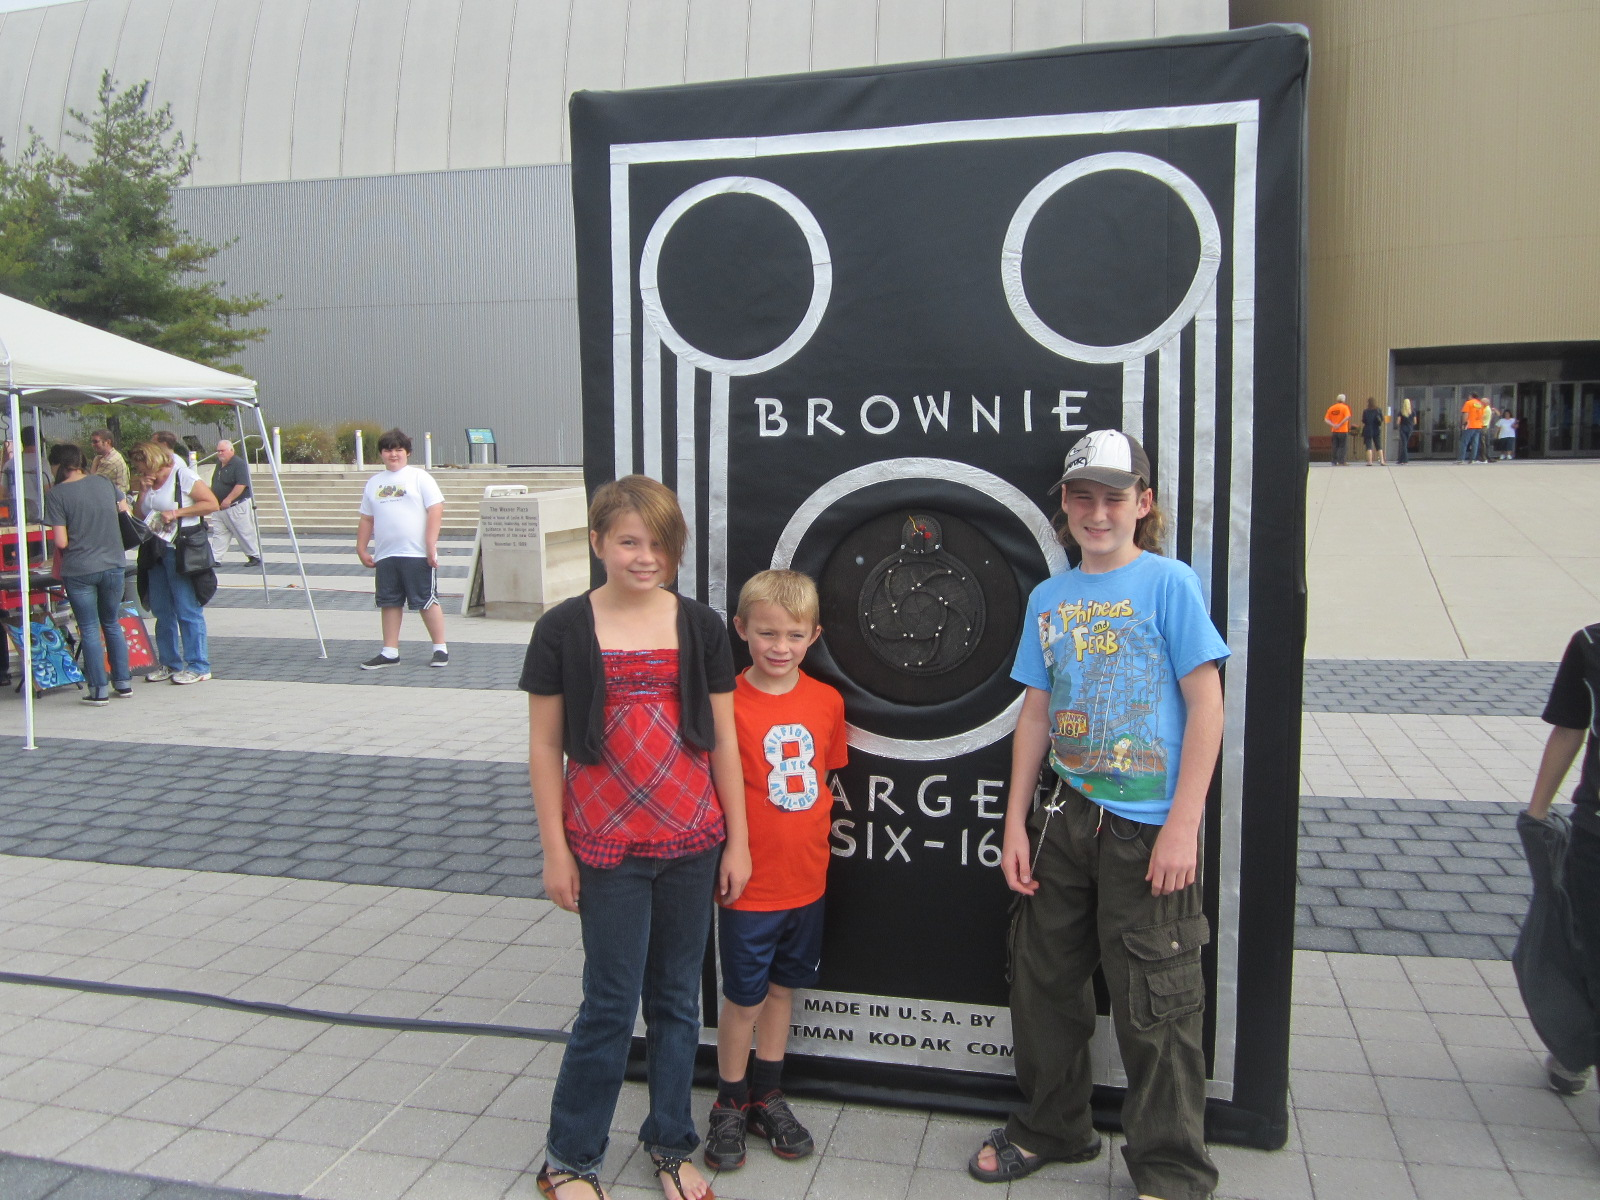 Giant replica of a Brownie camera by Stephen